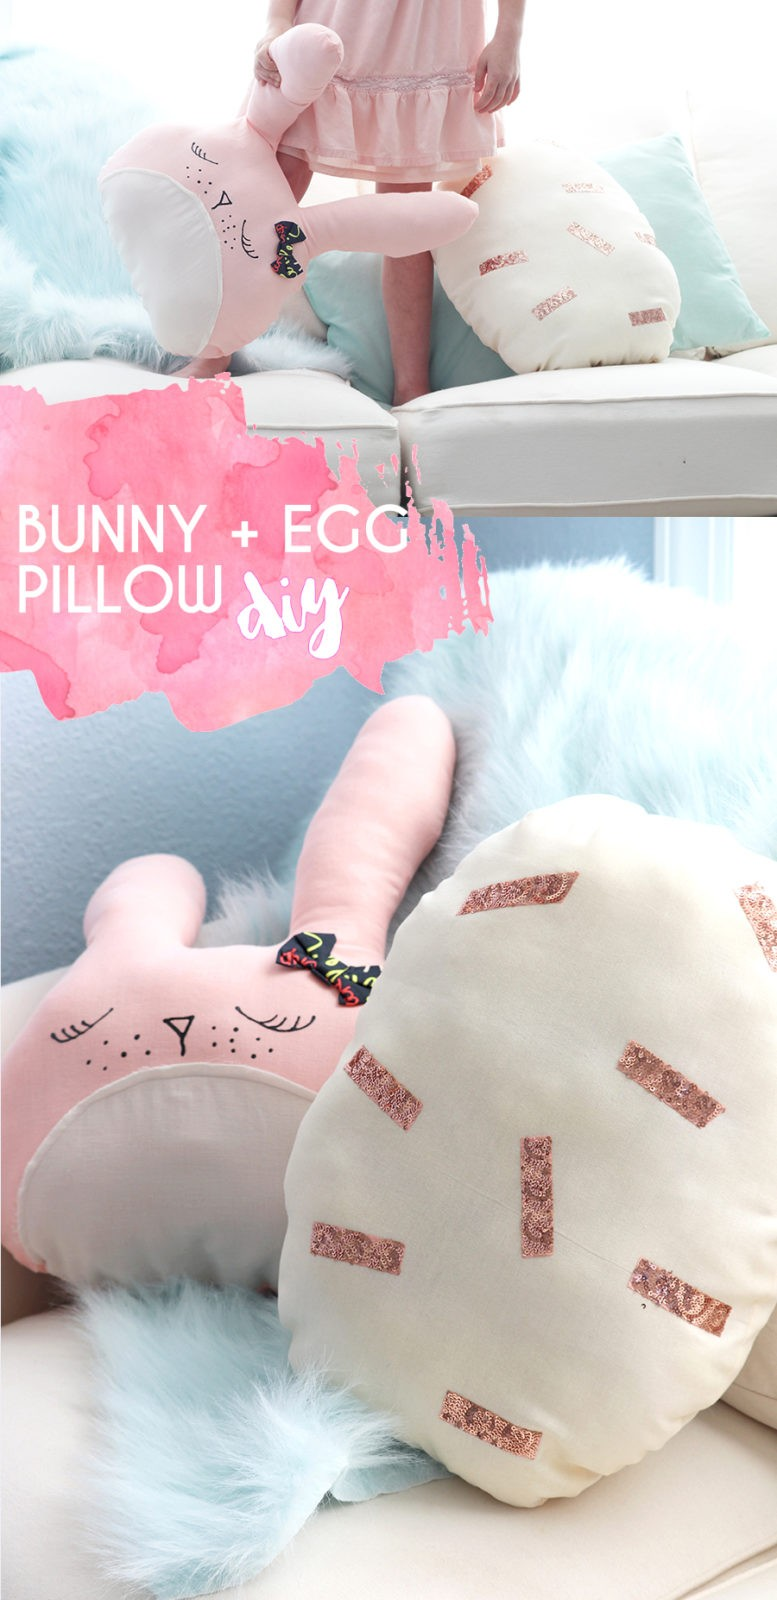 bunny and egg easter pillow tutorials, how to make a stuffed bunny and stuffed egg, easter home decor DIY